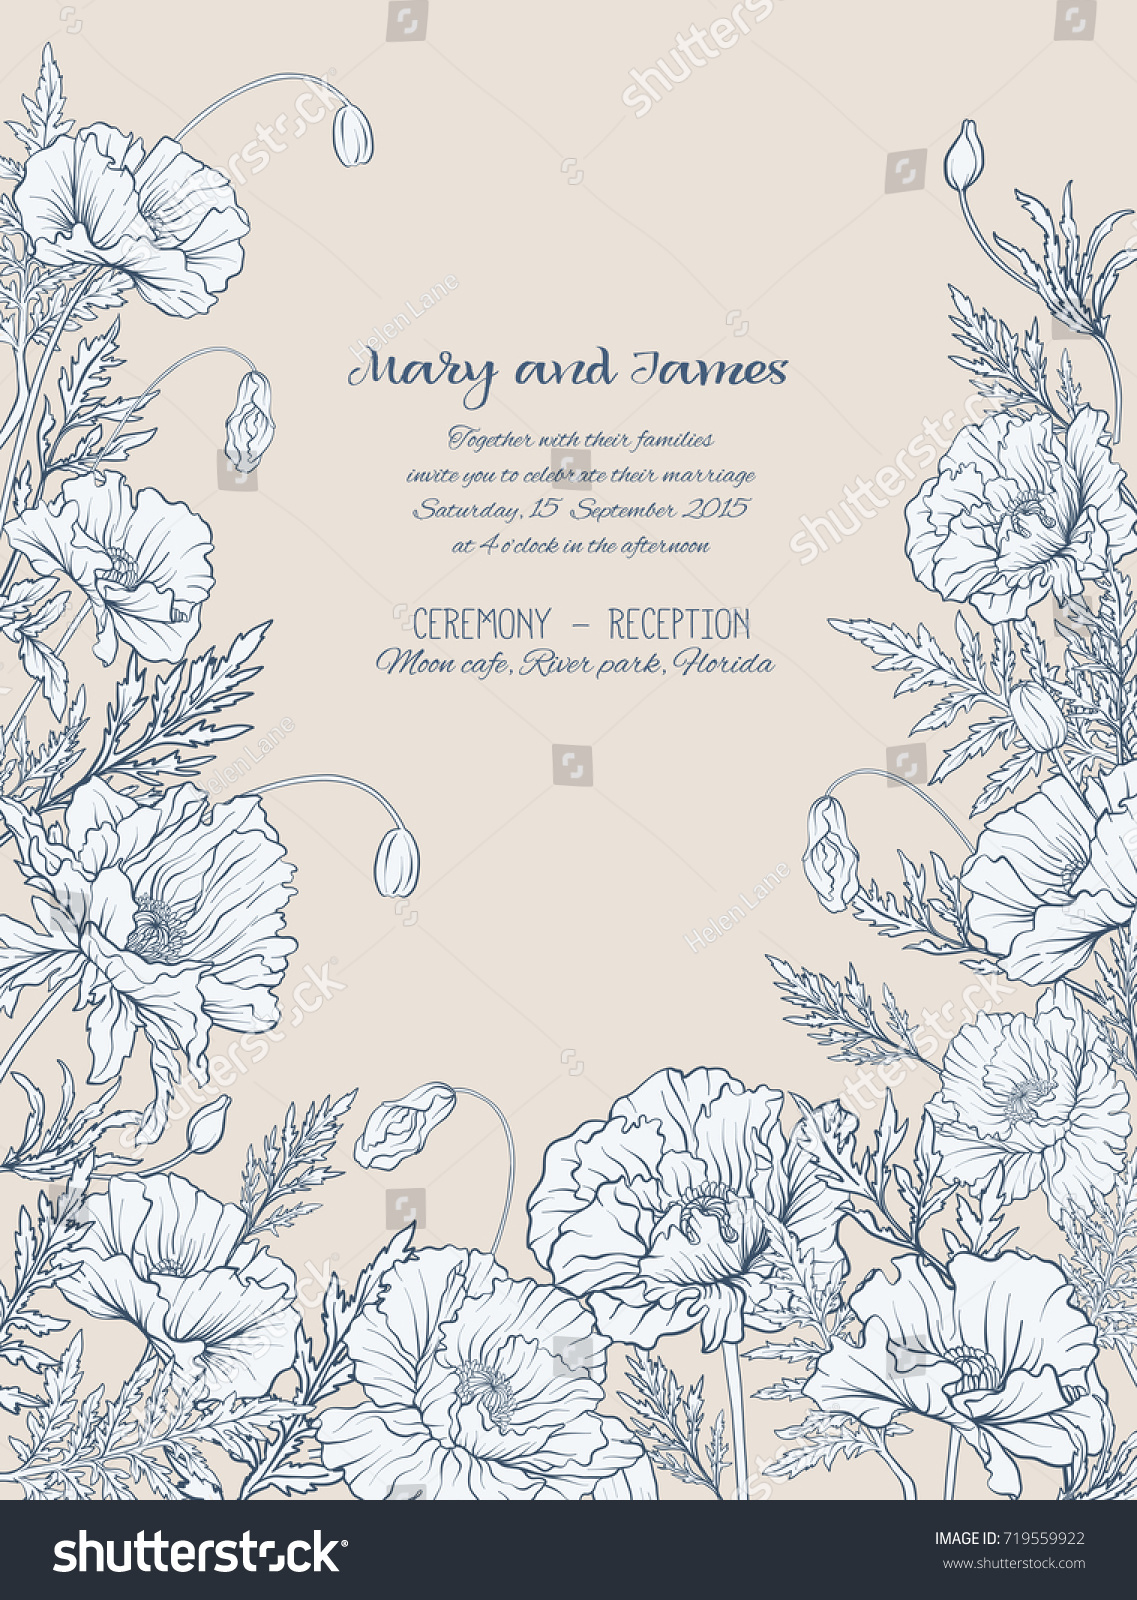 wedding invitations with poppies in vintage style on beige background - Vintage Style Wedding Invitations